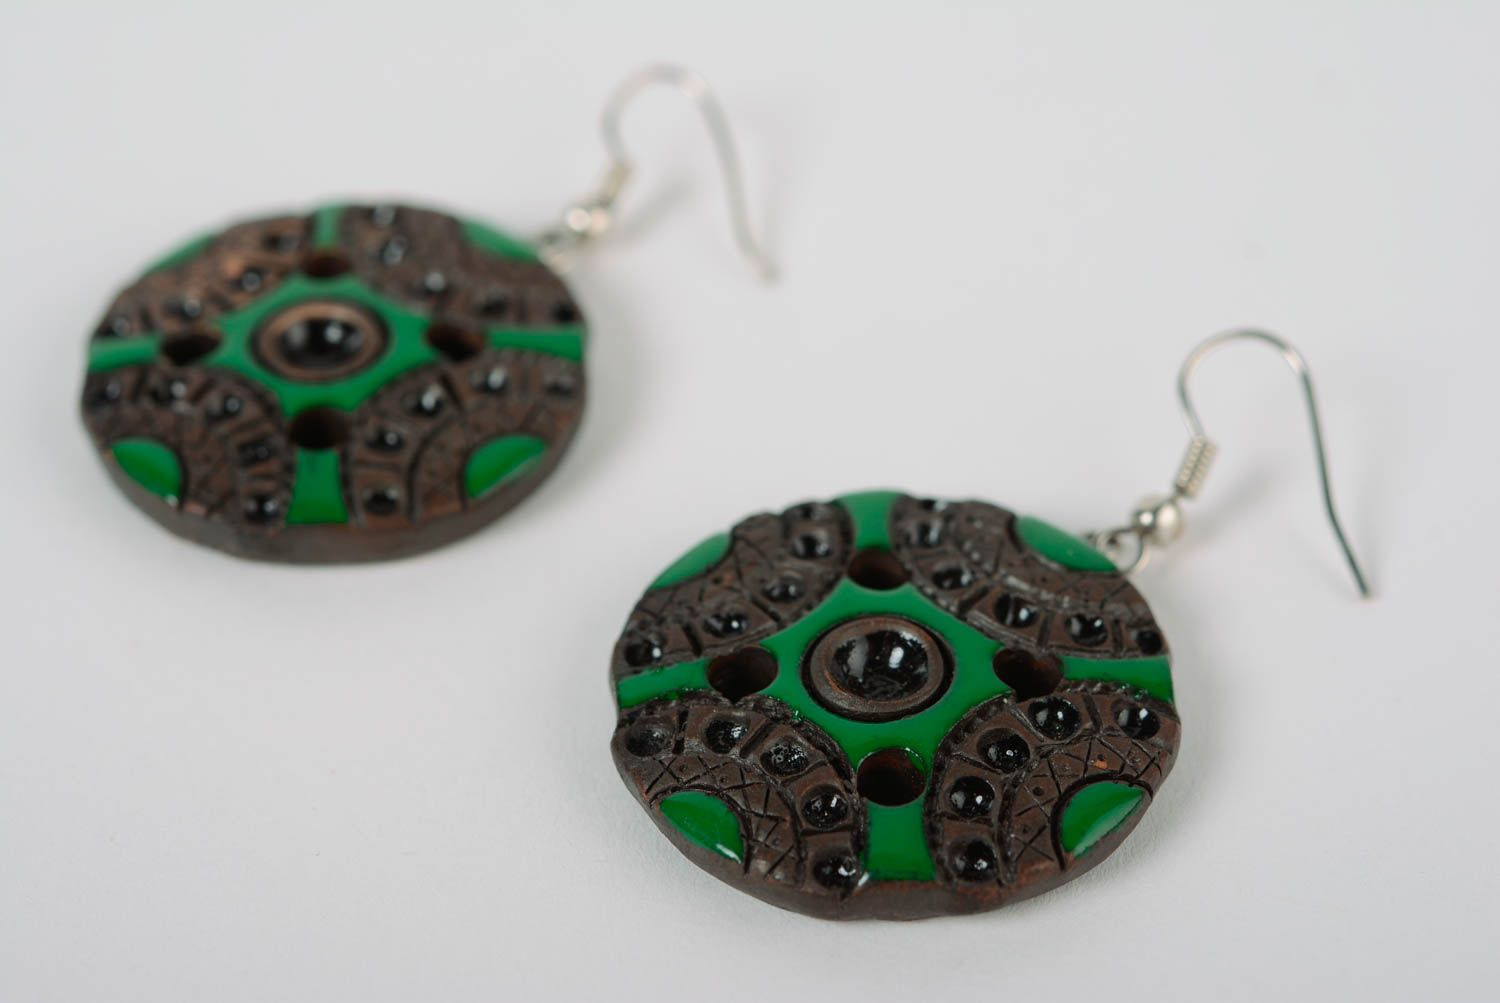 dangle earrings Handcrafted designer unique round ceramic earrings with colored enamel paintings   - MADEheart.com